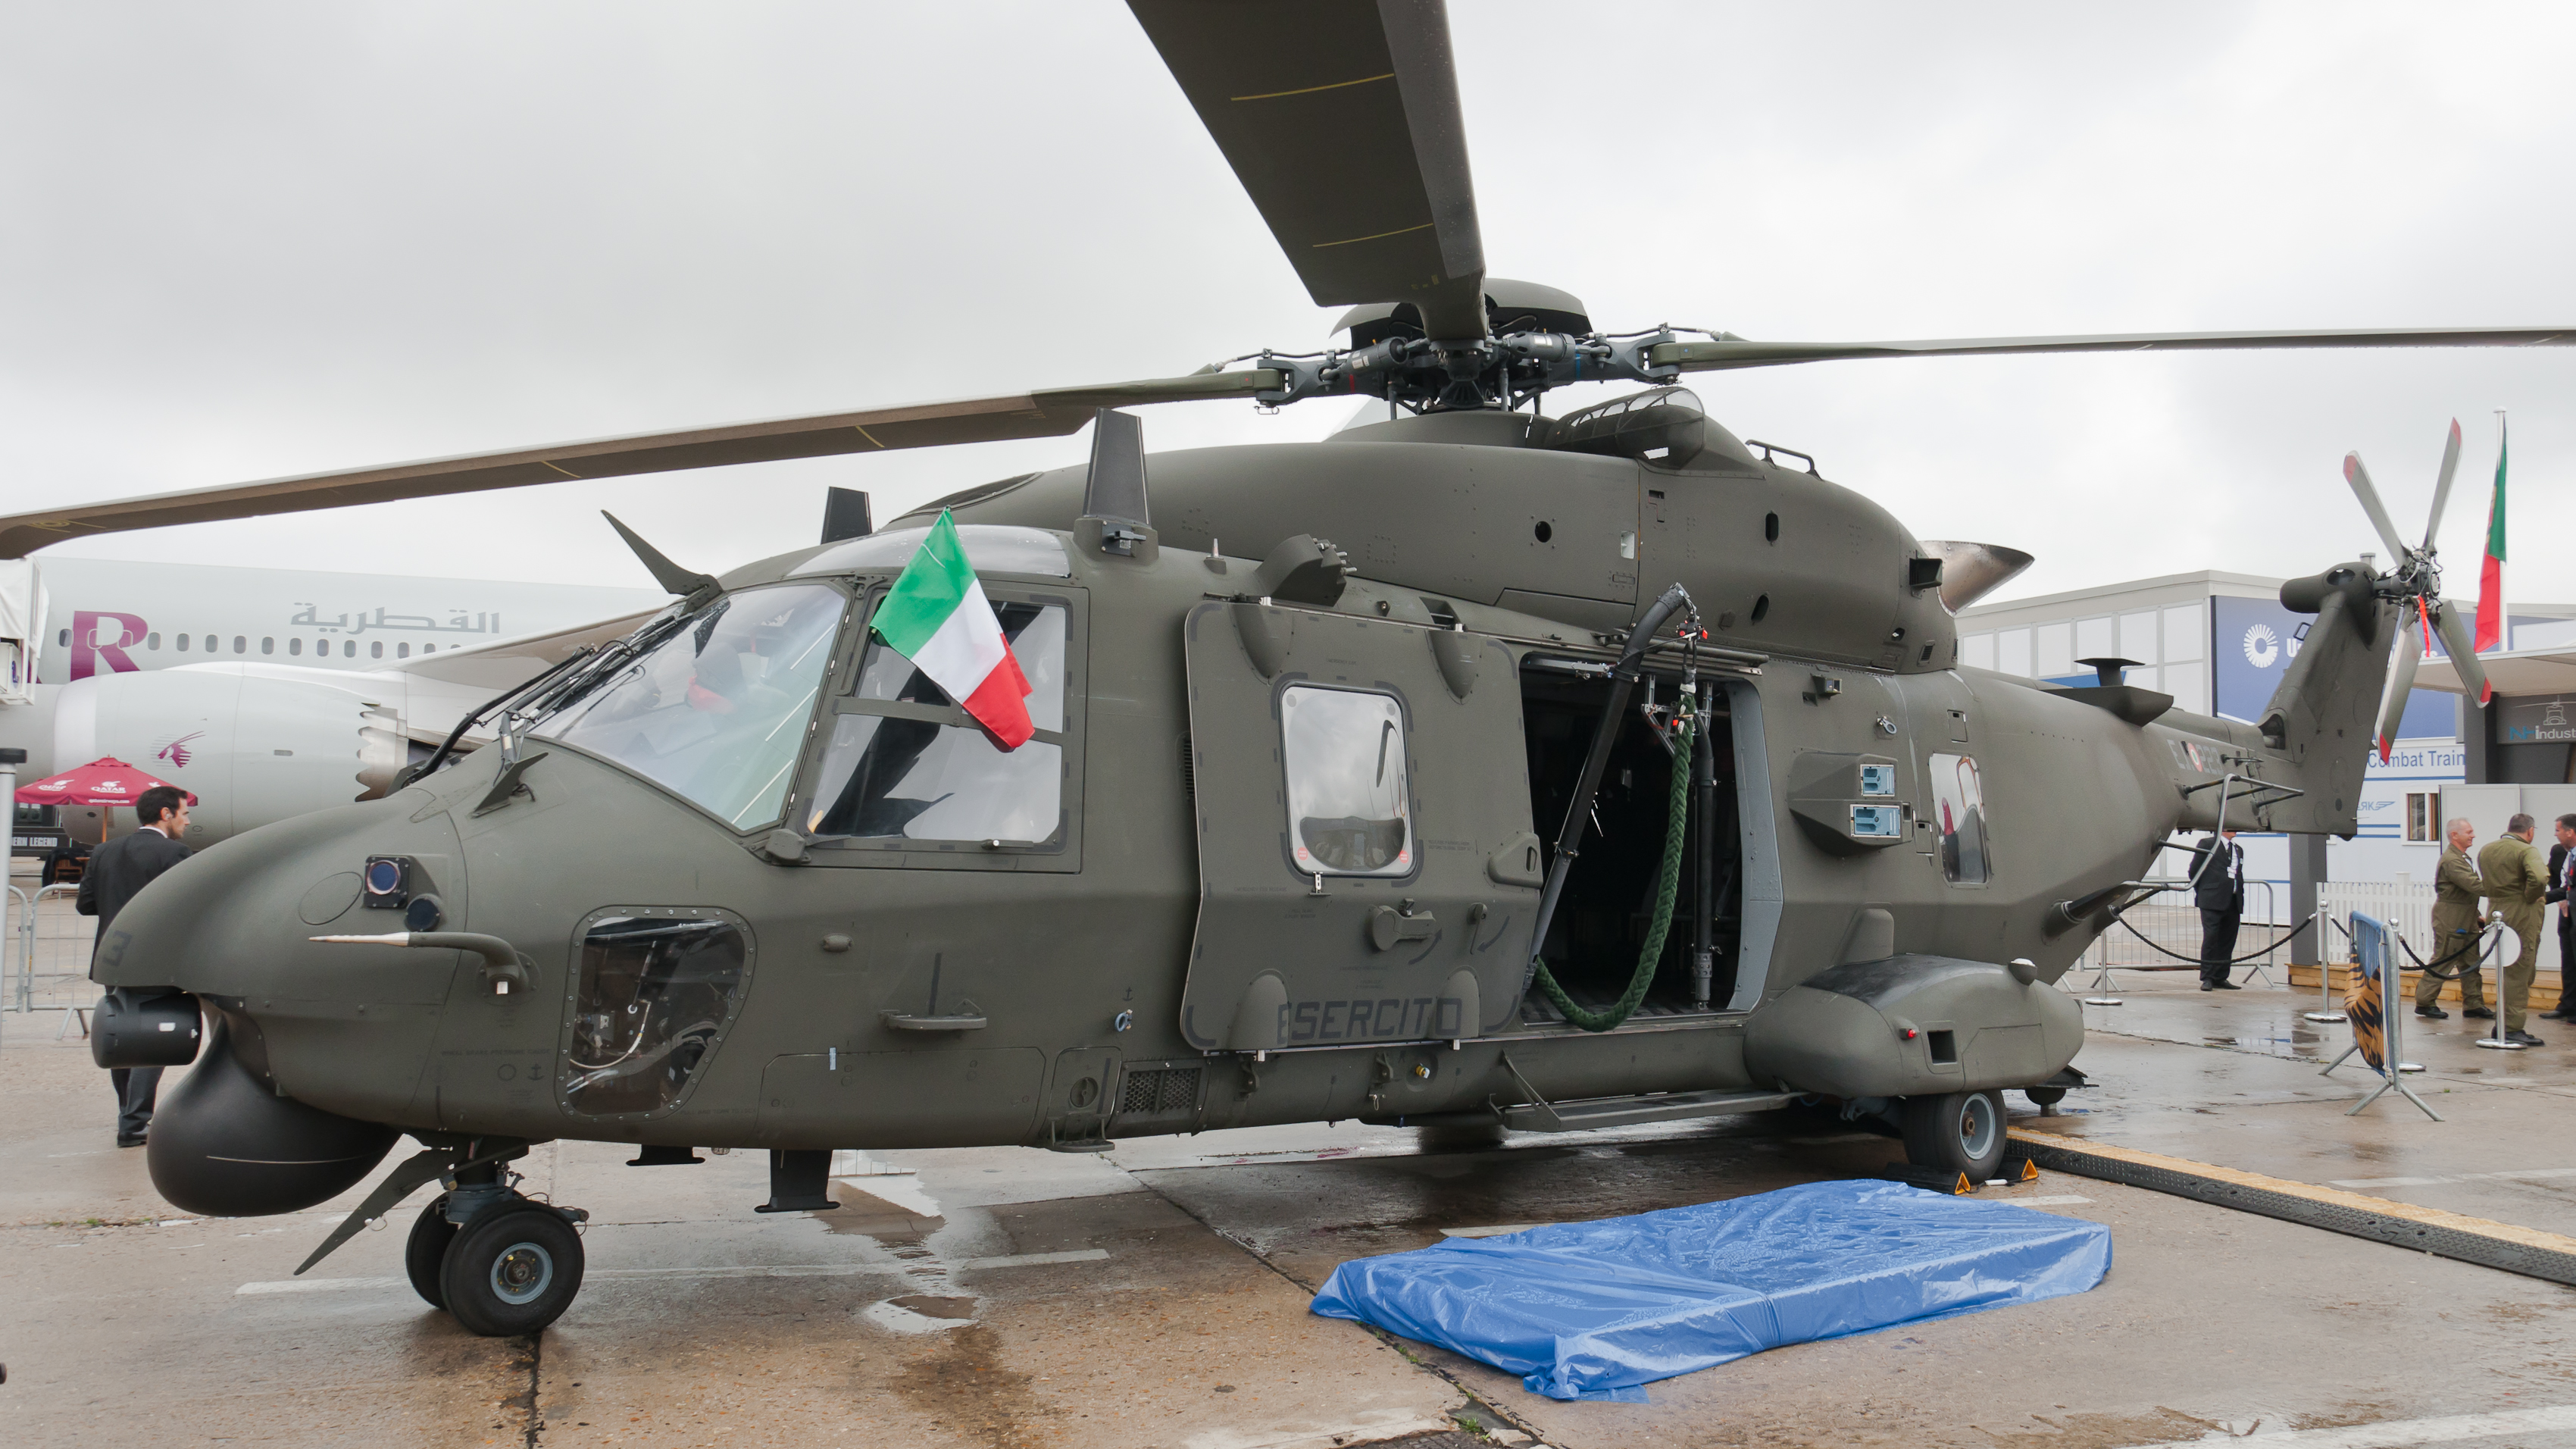 NH90: Europe's Medium Helicopter Gets New Order Despite Issues